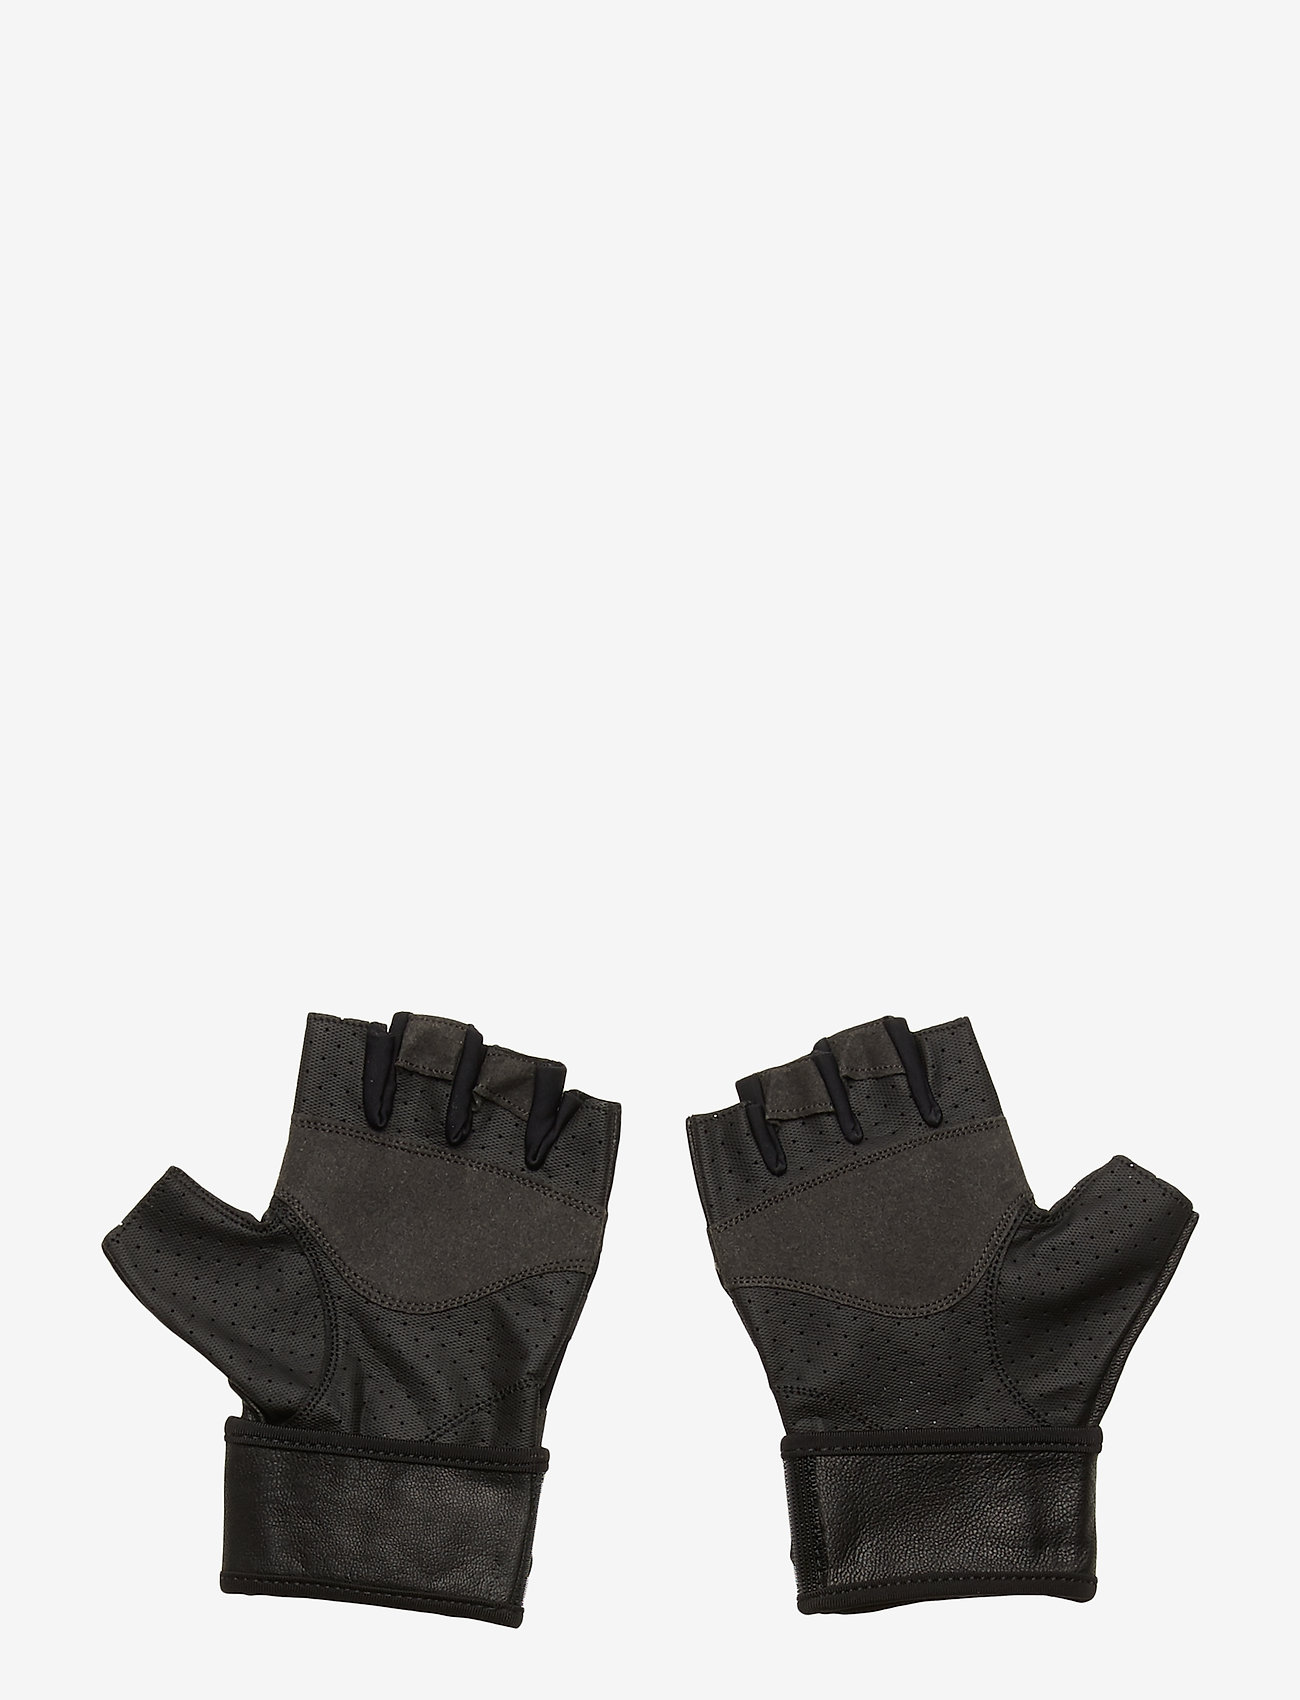 Casall - Exercise glove support - trainingsmateriaal - black - 1